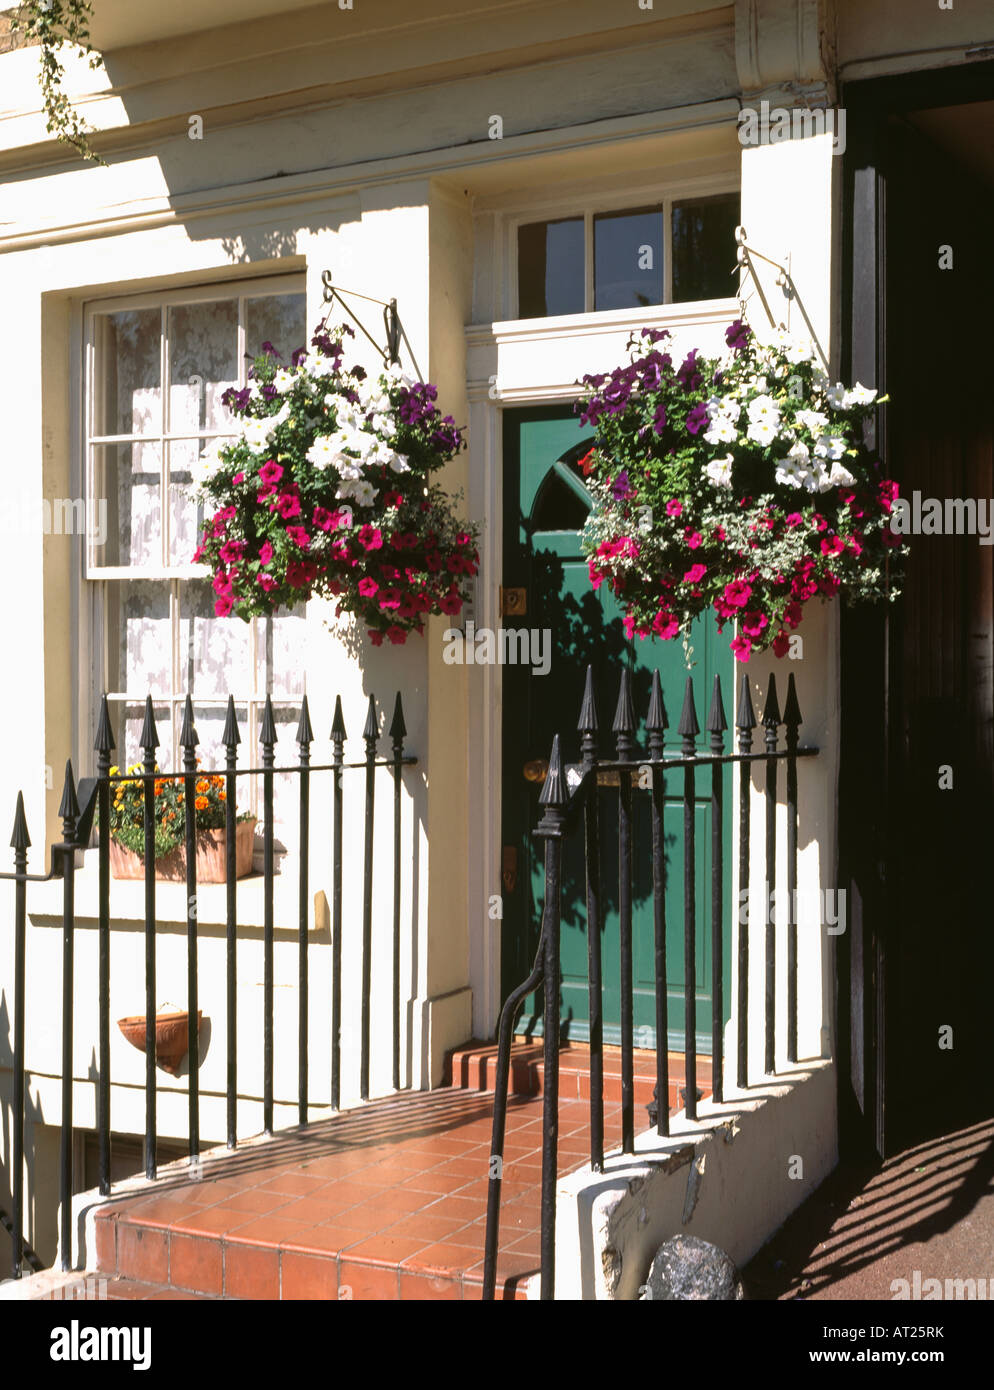 Iron Railings And Pink And Red Petunias In Hanging Baskets On Either